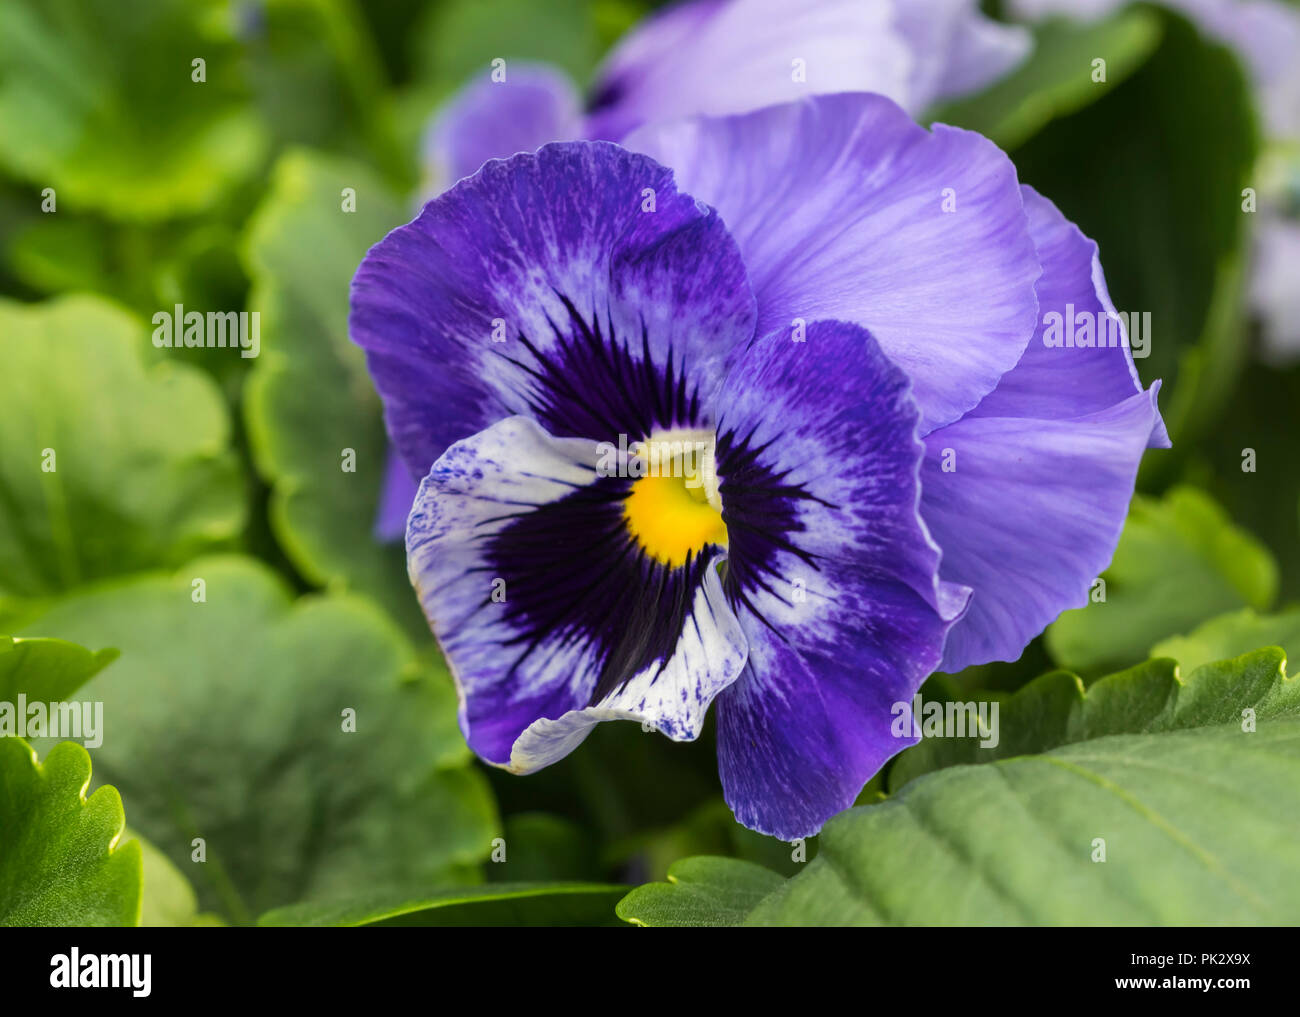 Single purple flower of the annual Pansy 'Marina' (Viola x wittrockiana) in Autumn in West Sussex, UK. Purple pansies. Stock Photo